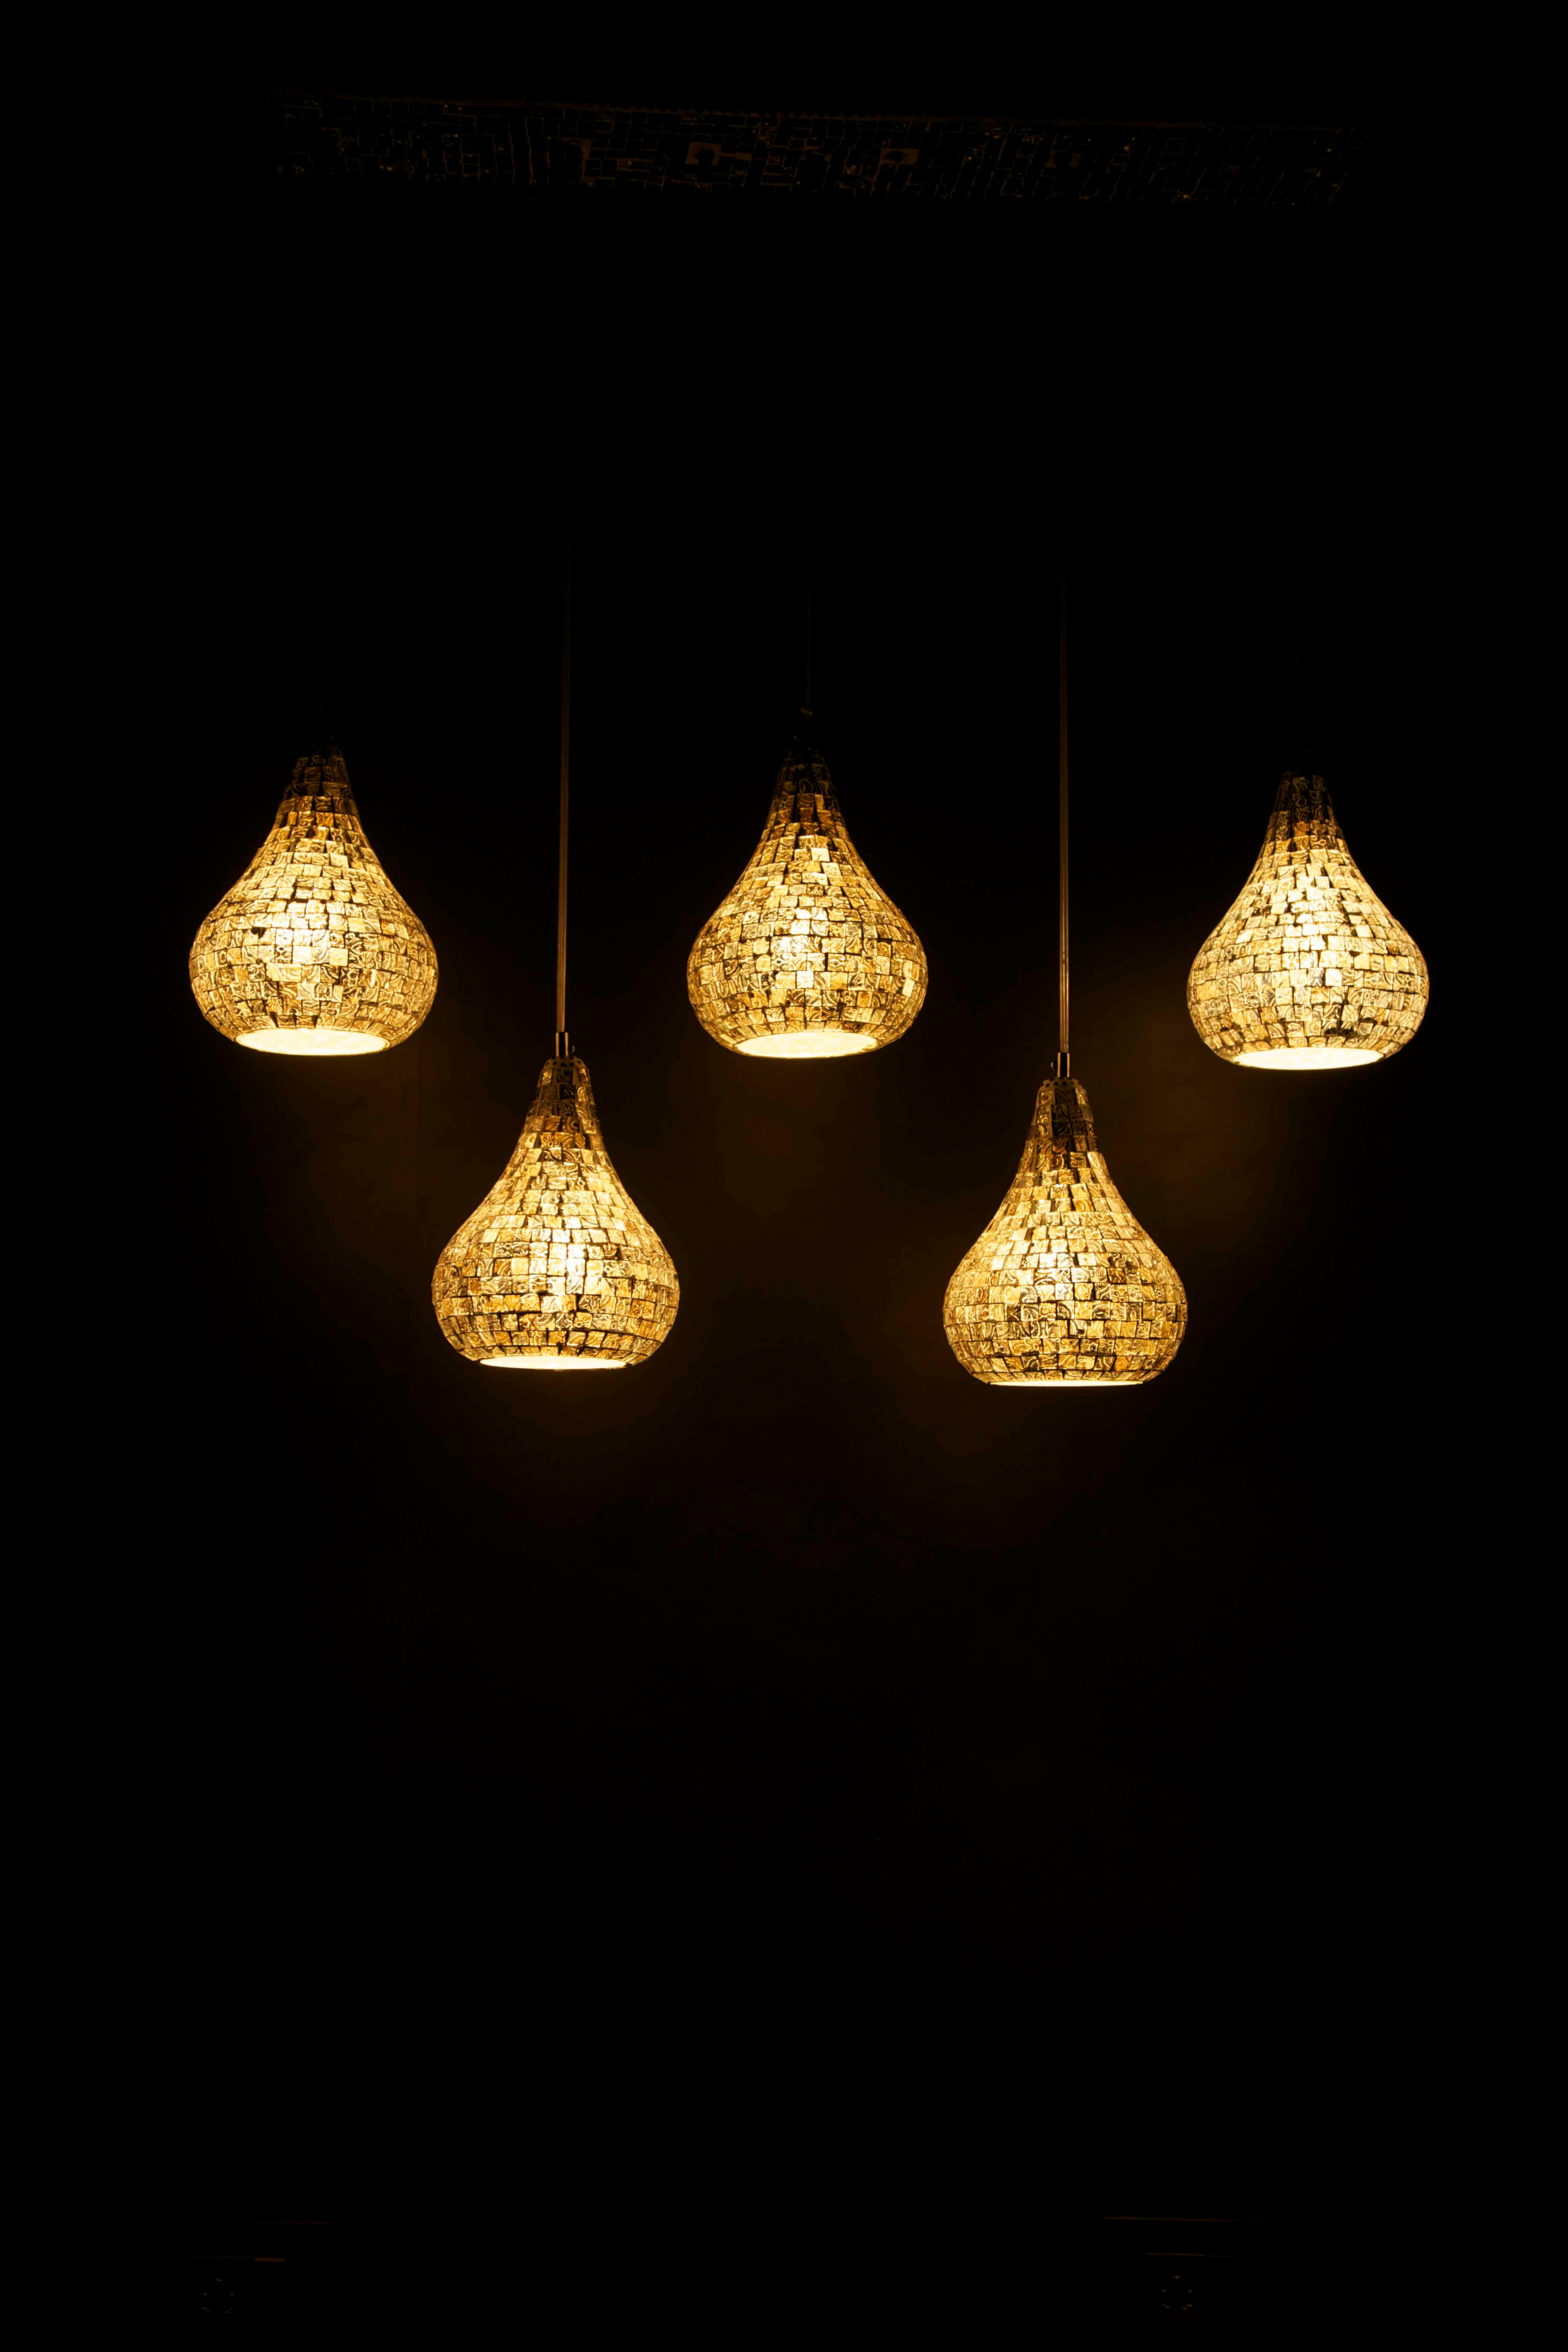 Gopichand And Son Lighting Company For Luxury Decorative And Fancy Lights At Home Antique Lightning Wall Lightning Buy Fancy Lights Light Decorations Lights Fancy lamps for living room